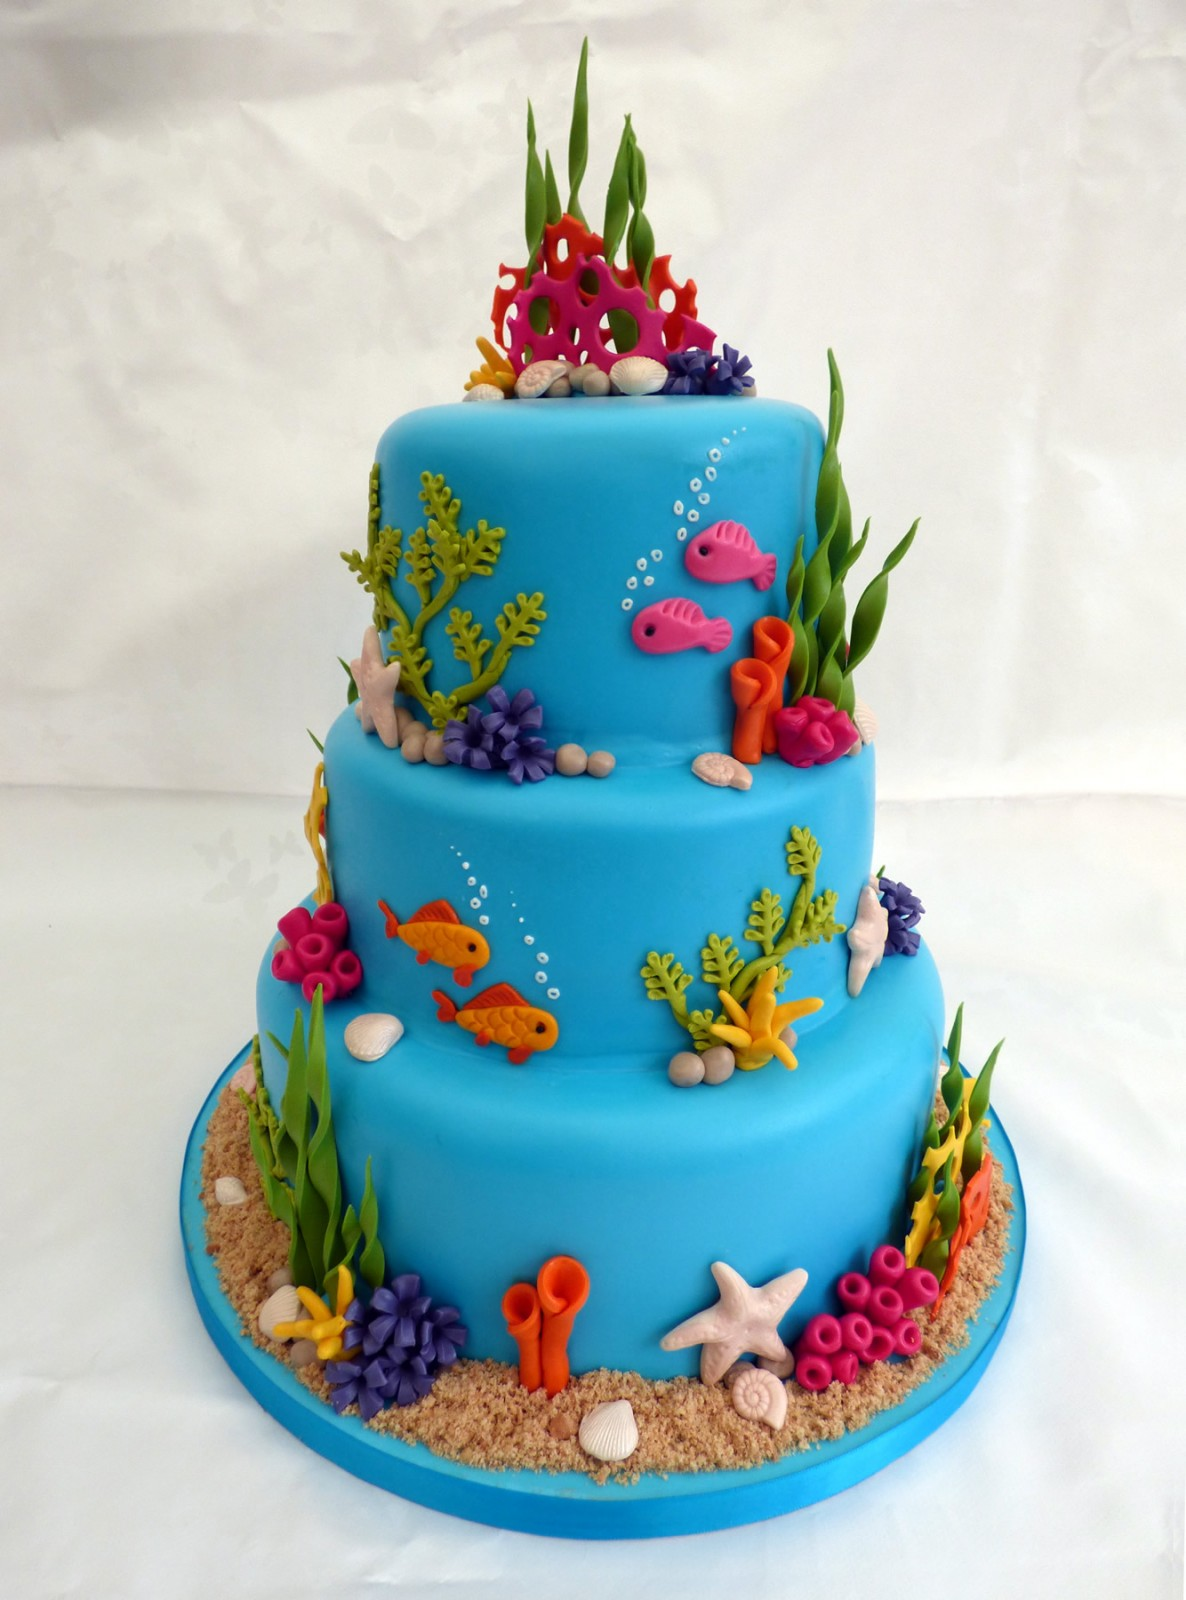 In their bakery department they can make any kind of special occasion cakes. You can use these for any occasion, from baby showers to weddings. Many people spend a small fortune on specialty wedding cakes but you can order one from the Safeway bakery and cut your costs in half.